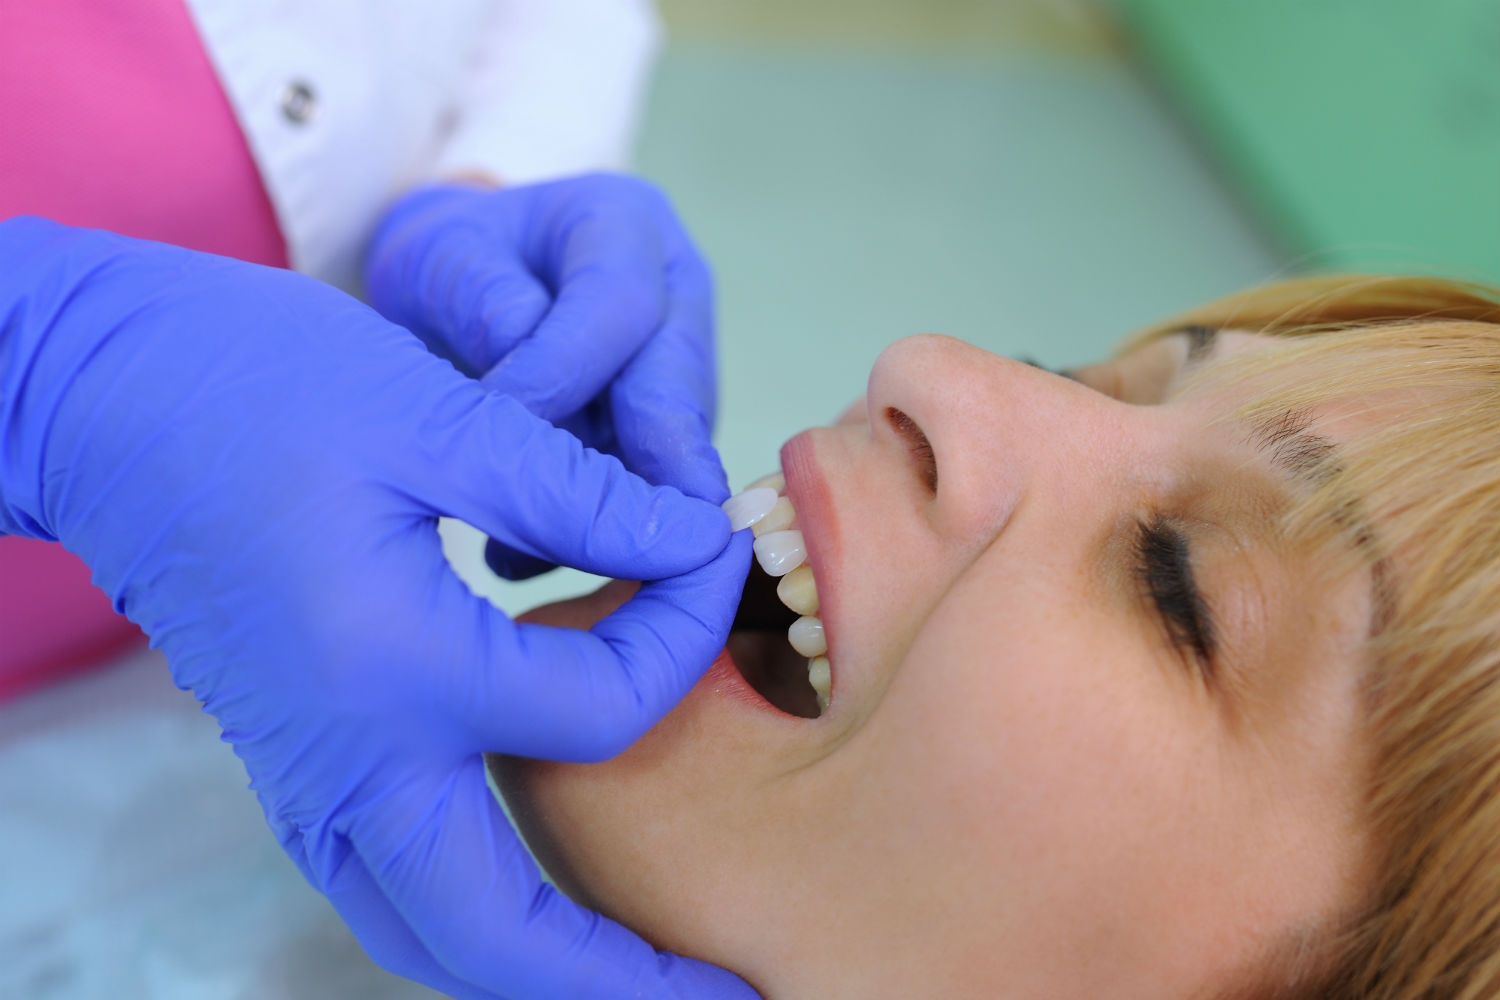 Veneers being placed on a patient